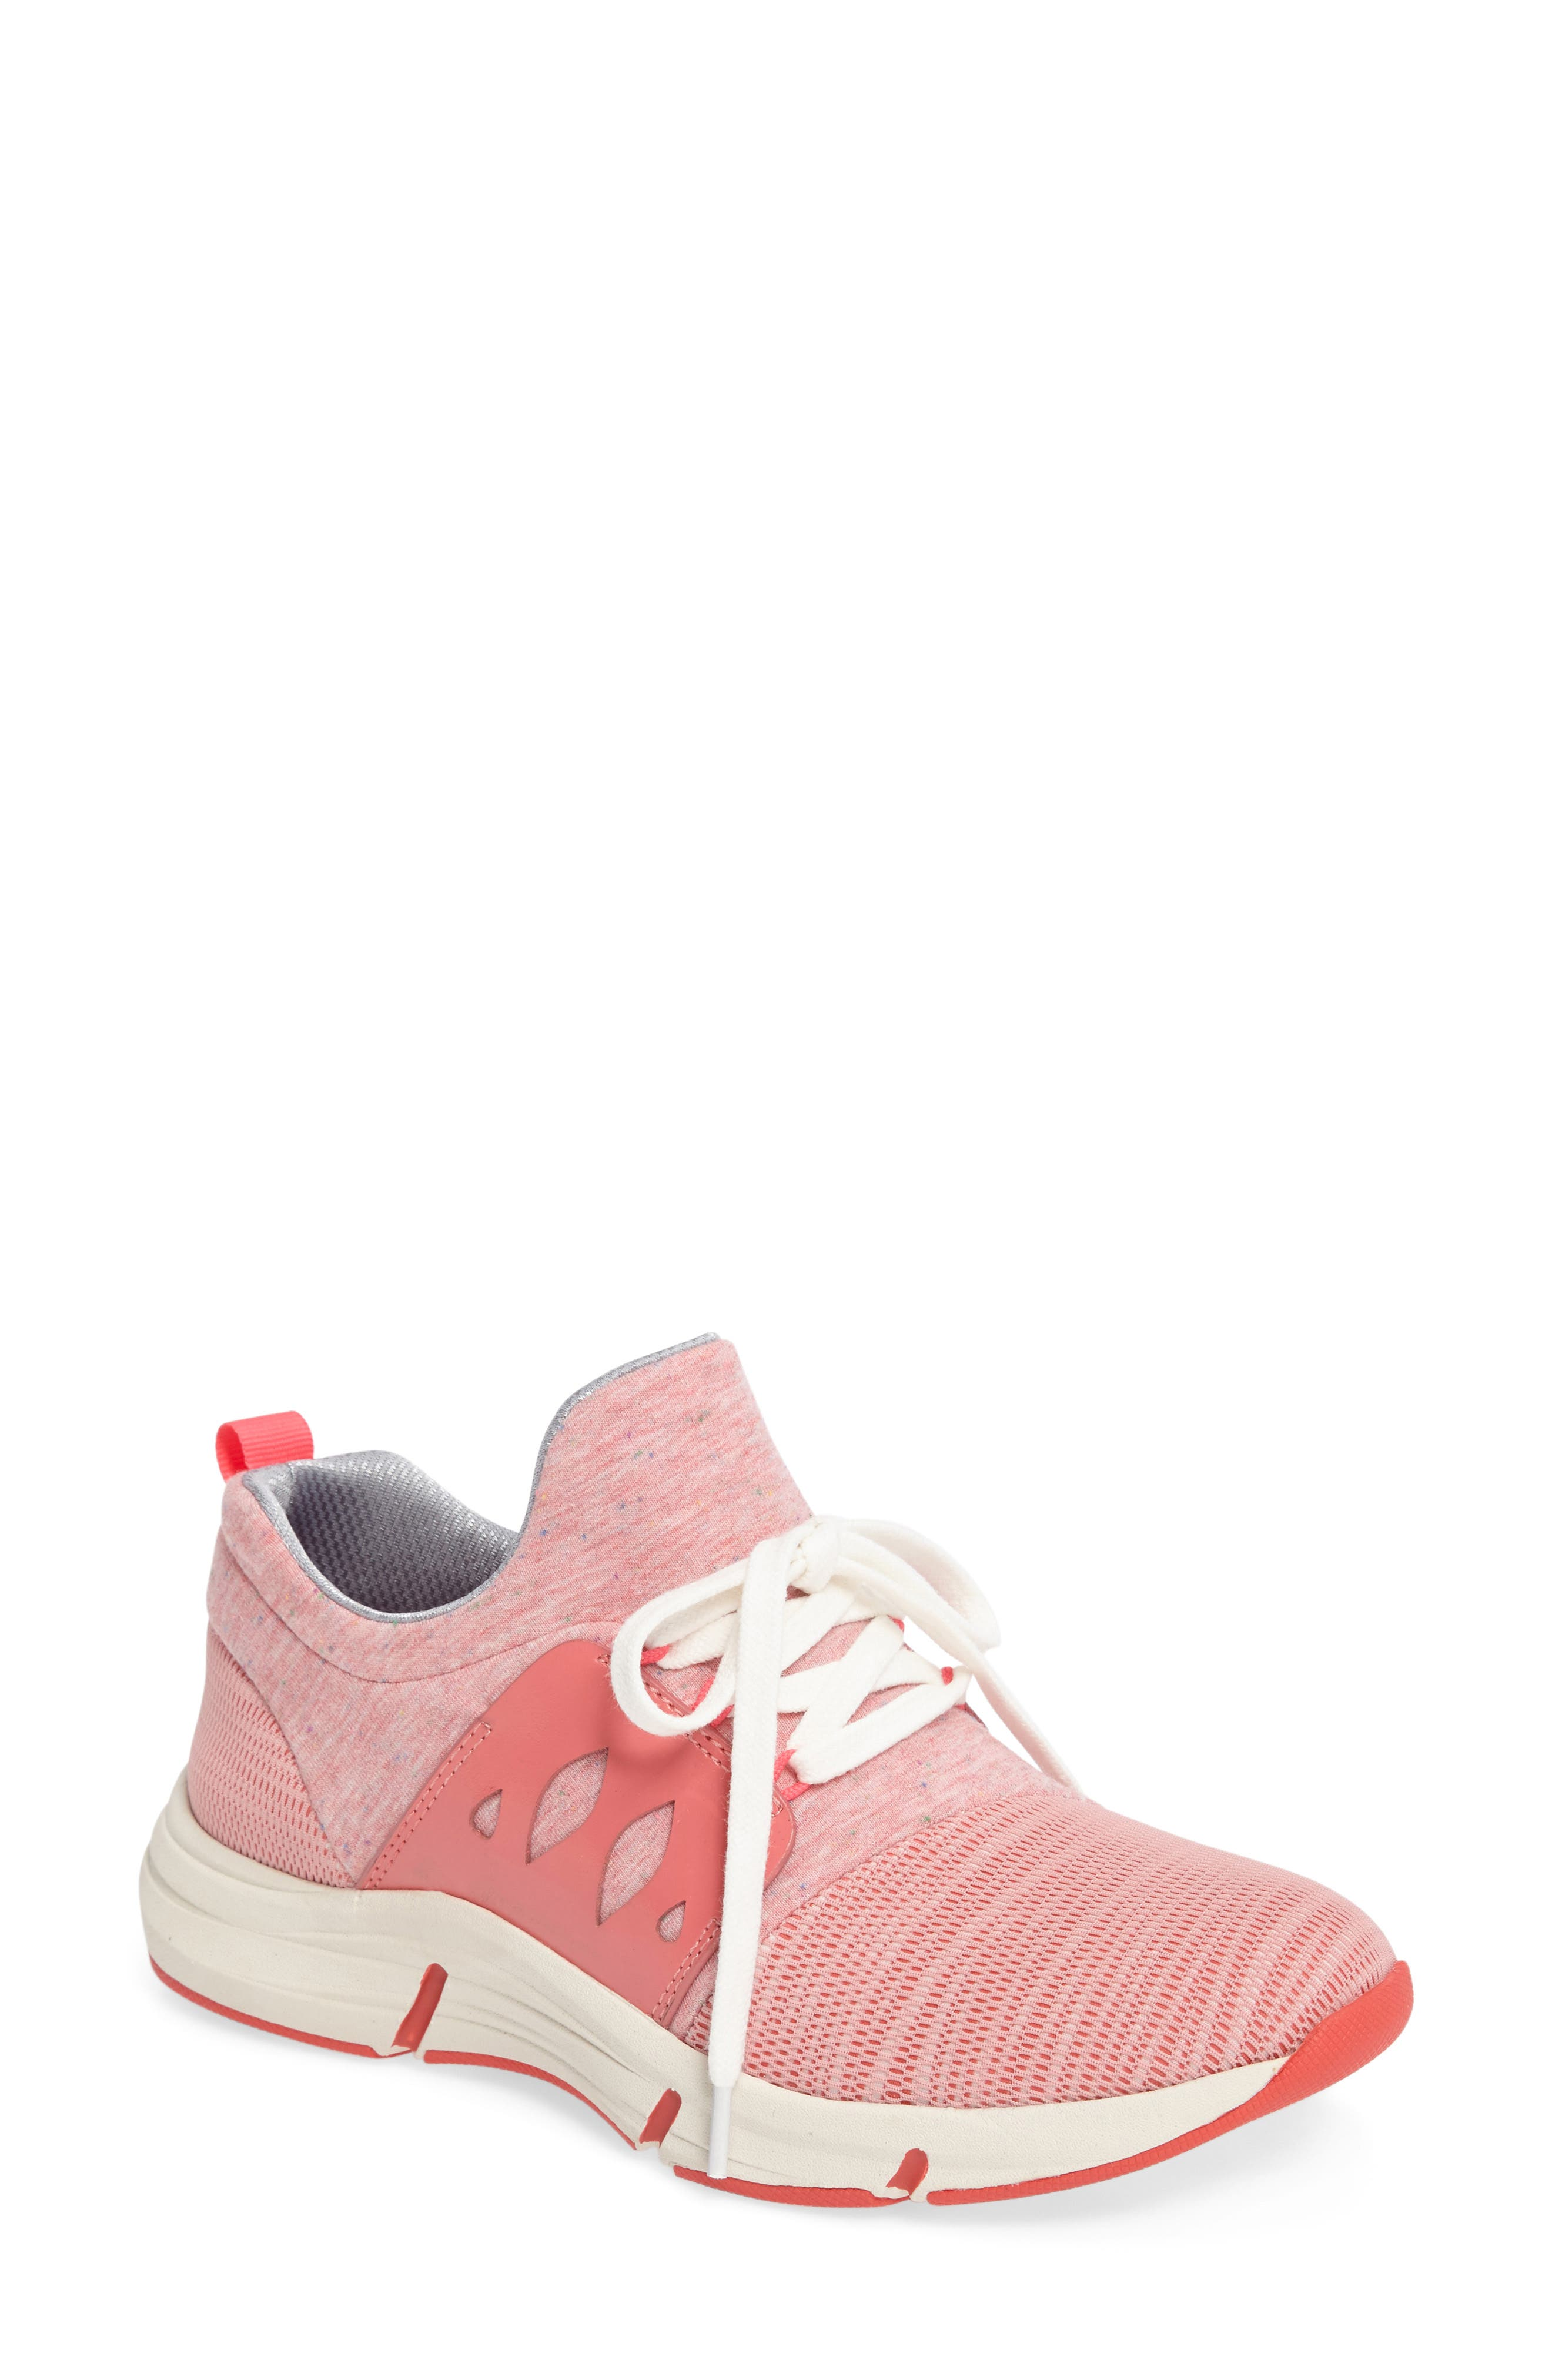 Ordell Sneaker,                         Main,                         color, PINK FABRIC